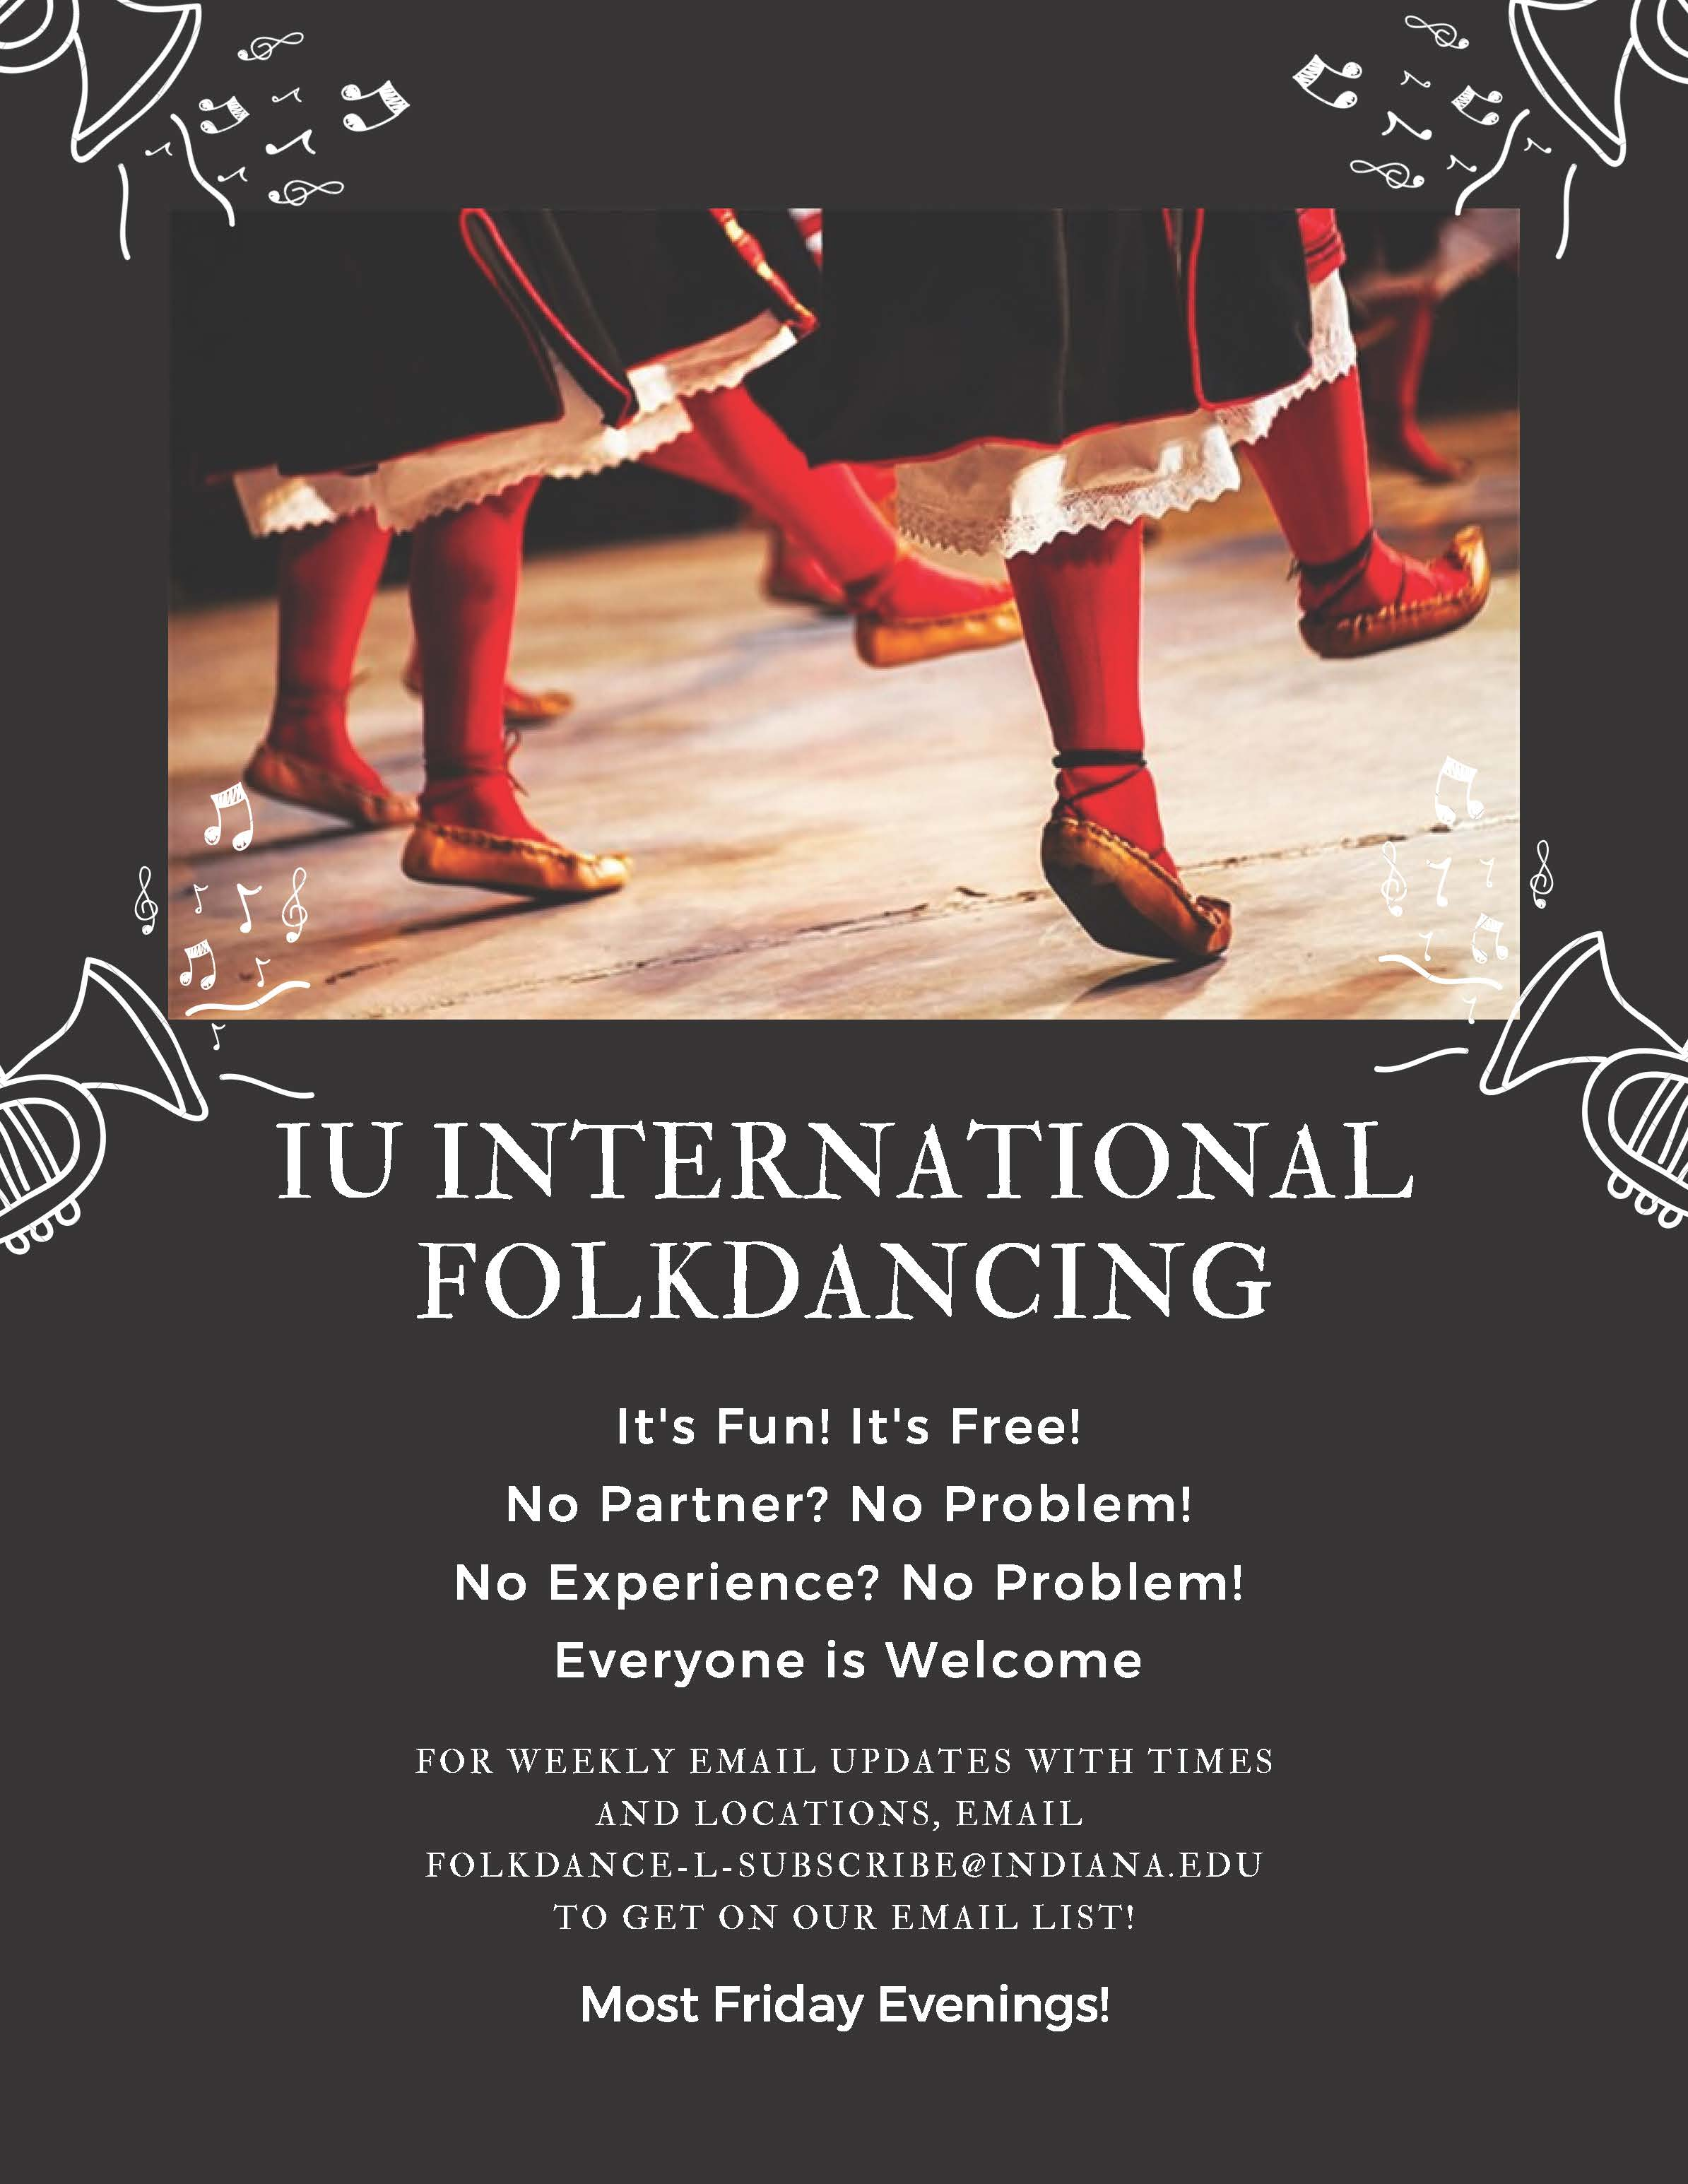 IU-International-Folk-Dancing.jpg